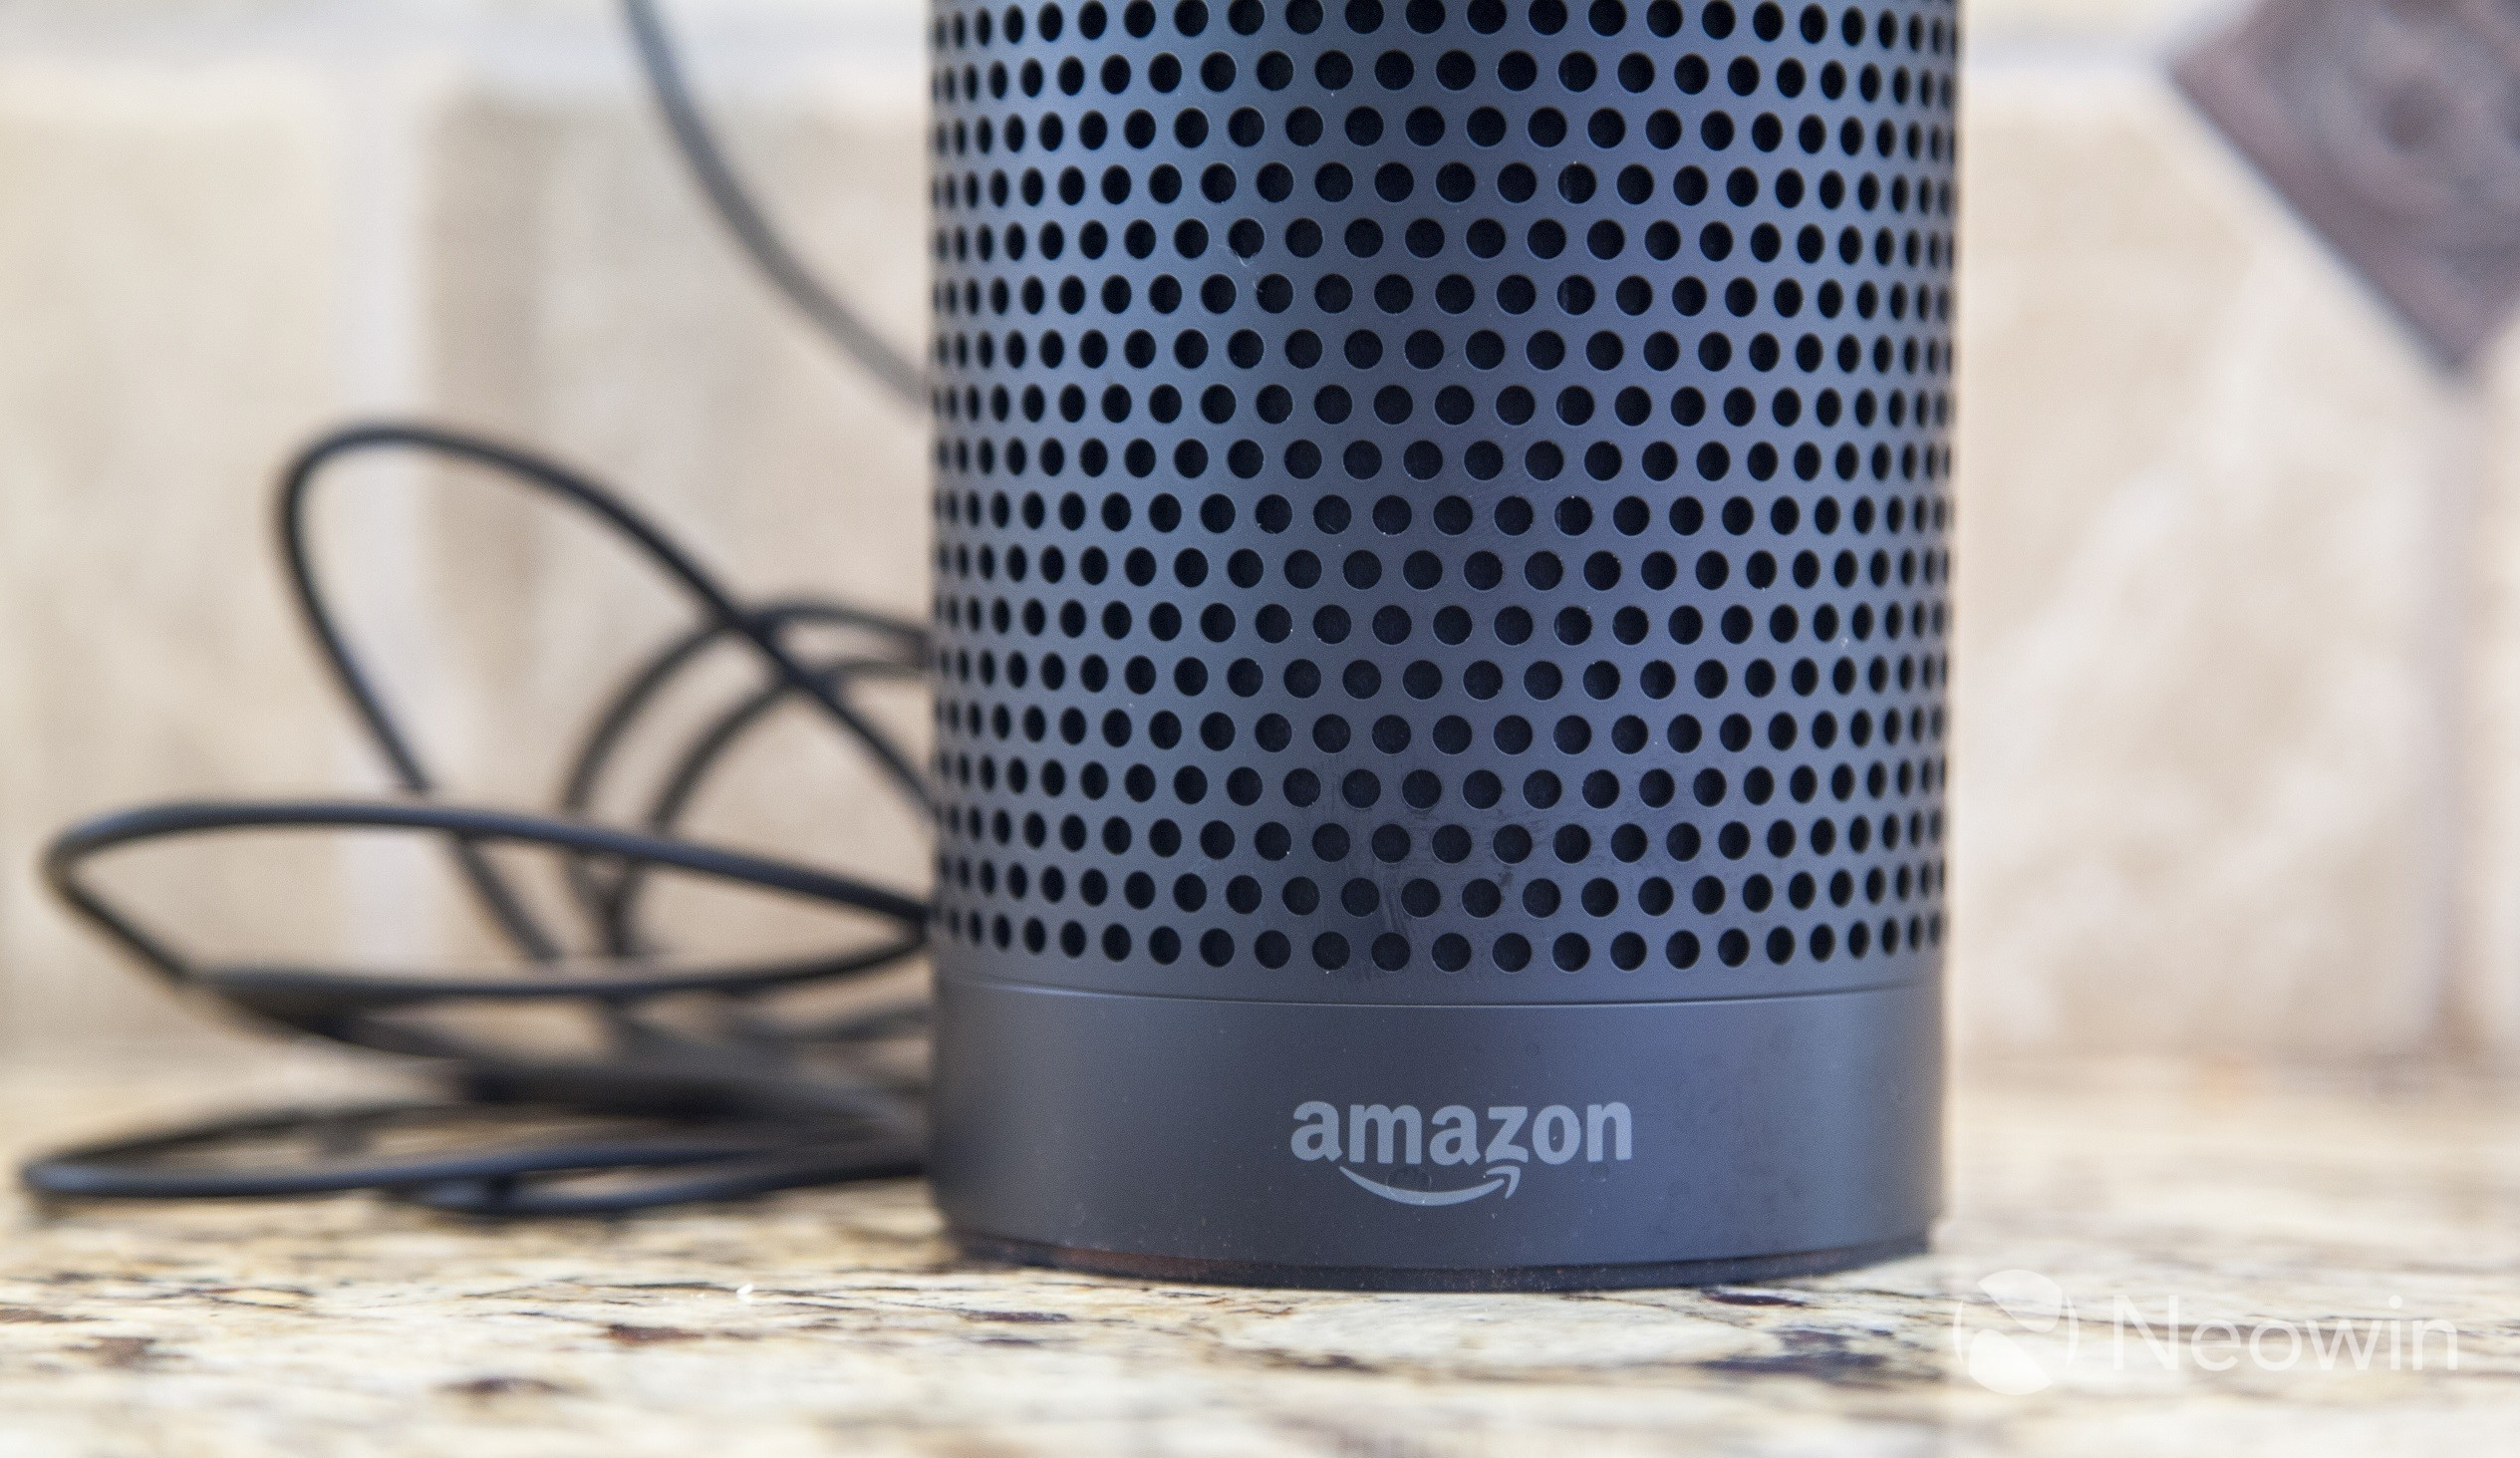 Amazon is reportedly baking Alexa into a microwave this year